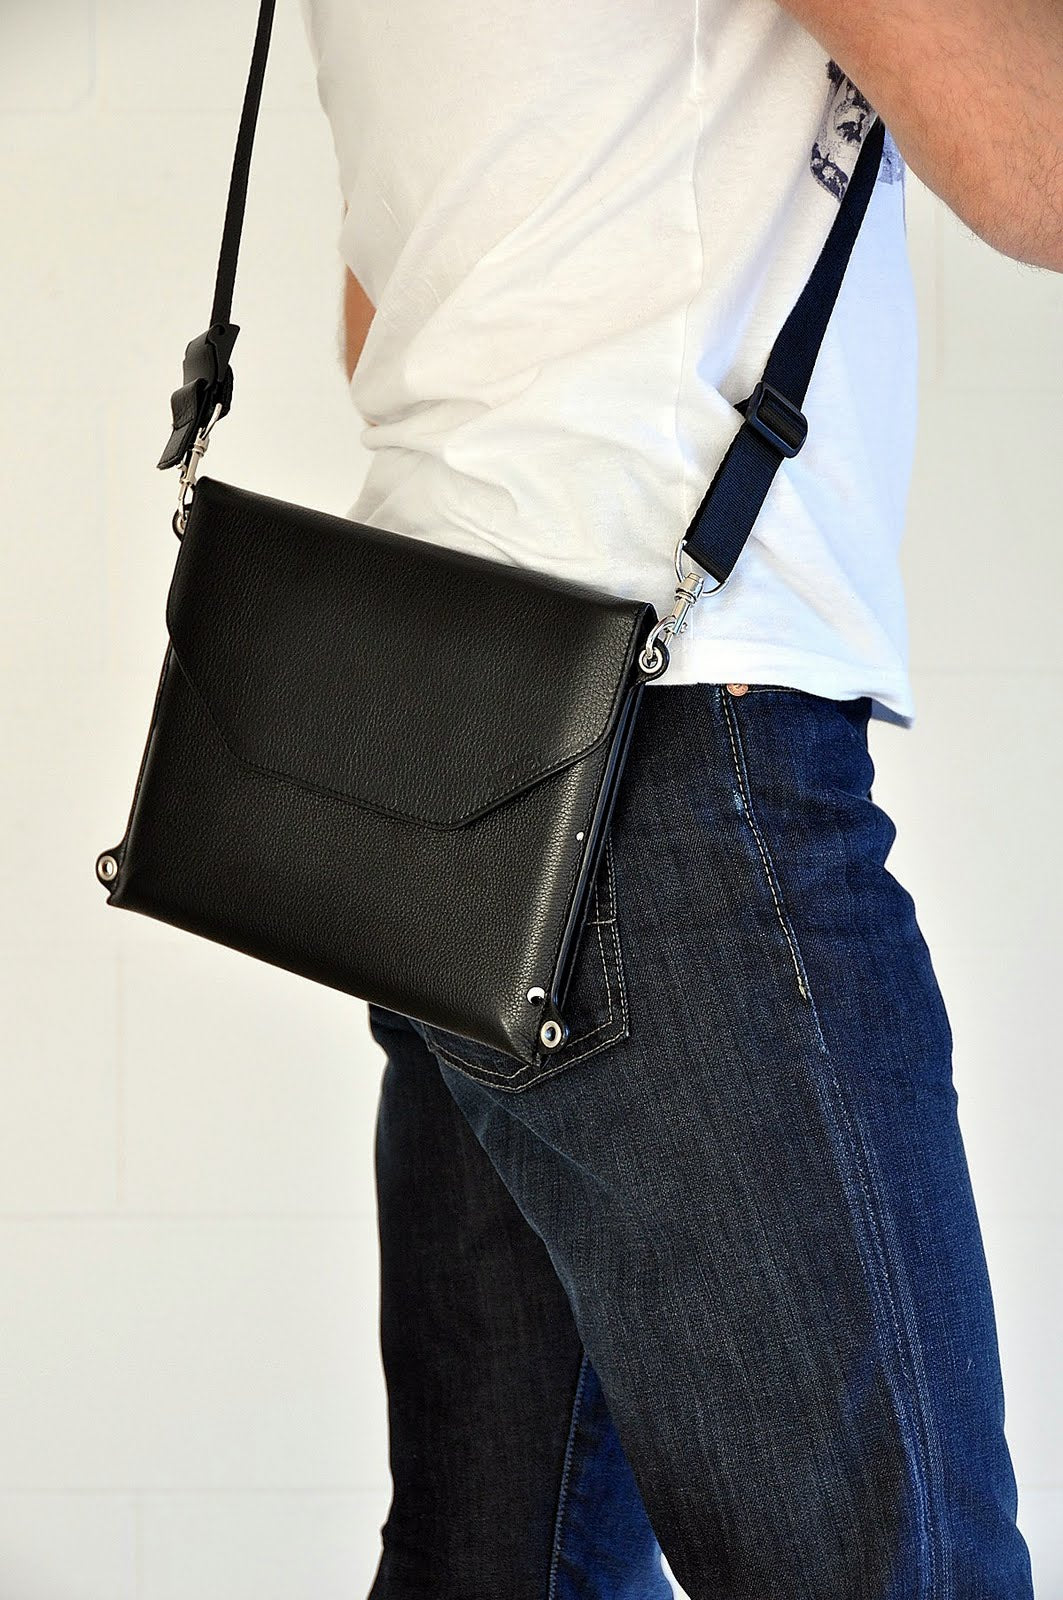 Across as a shoulder bag